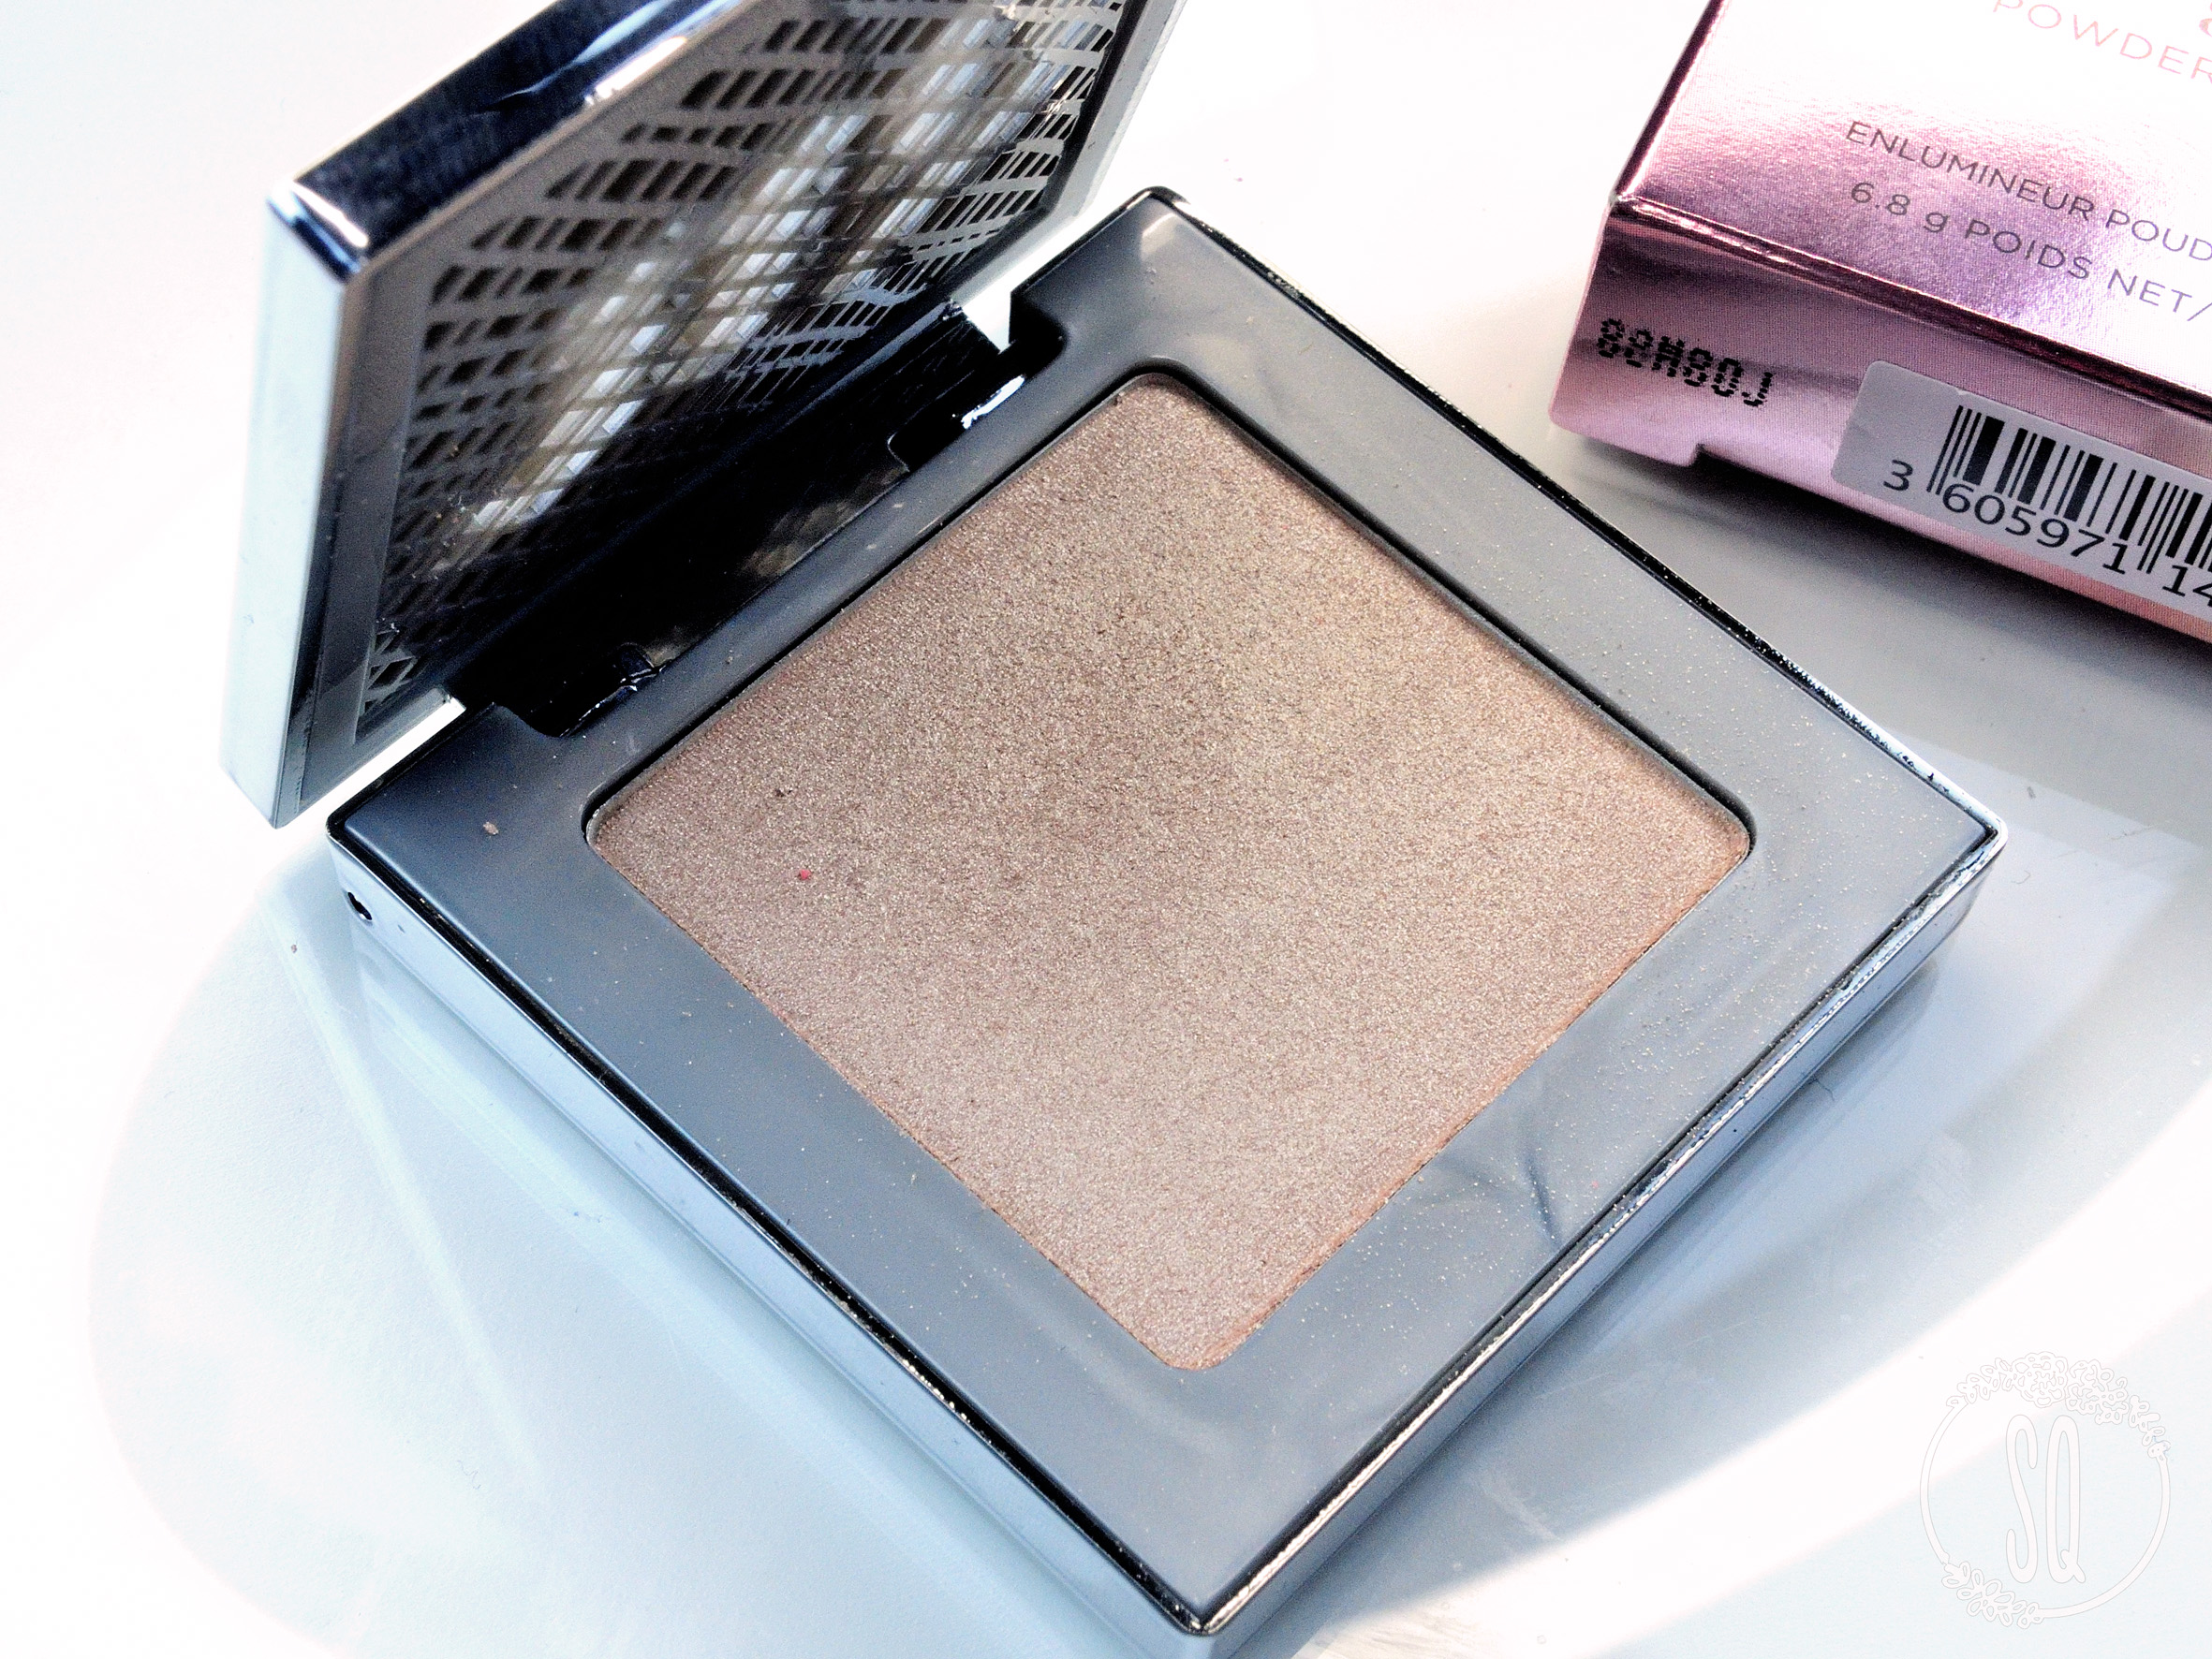 AfterGlow Sin Urban Decay